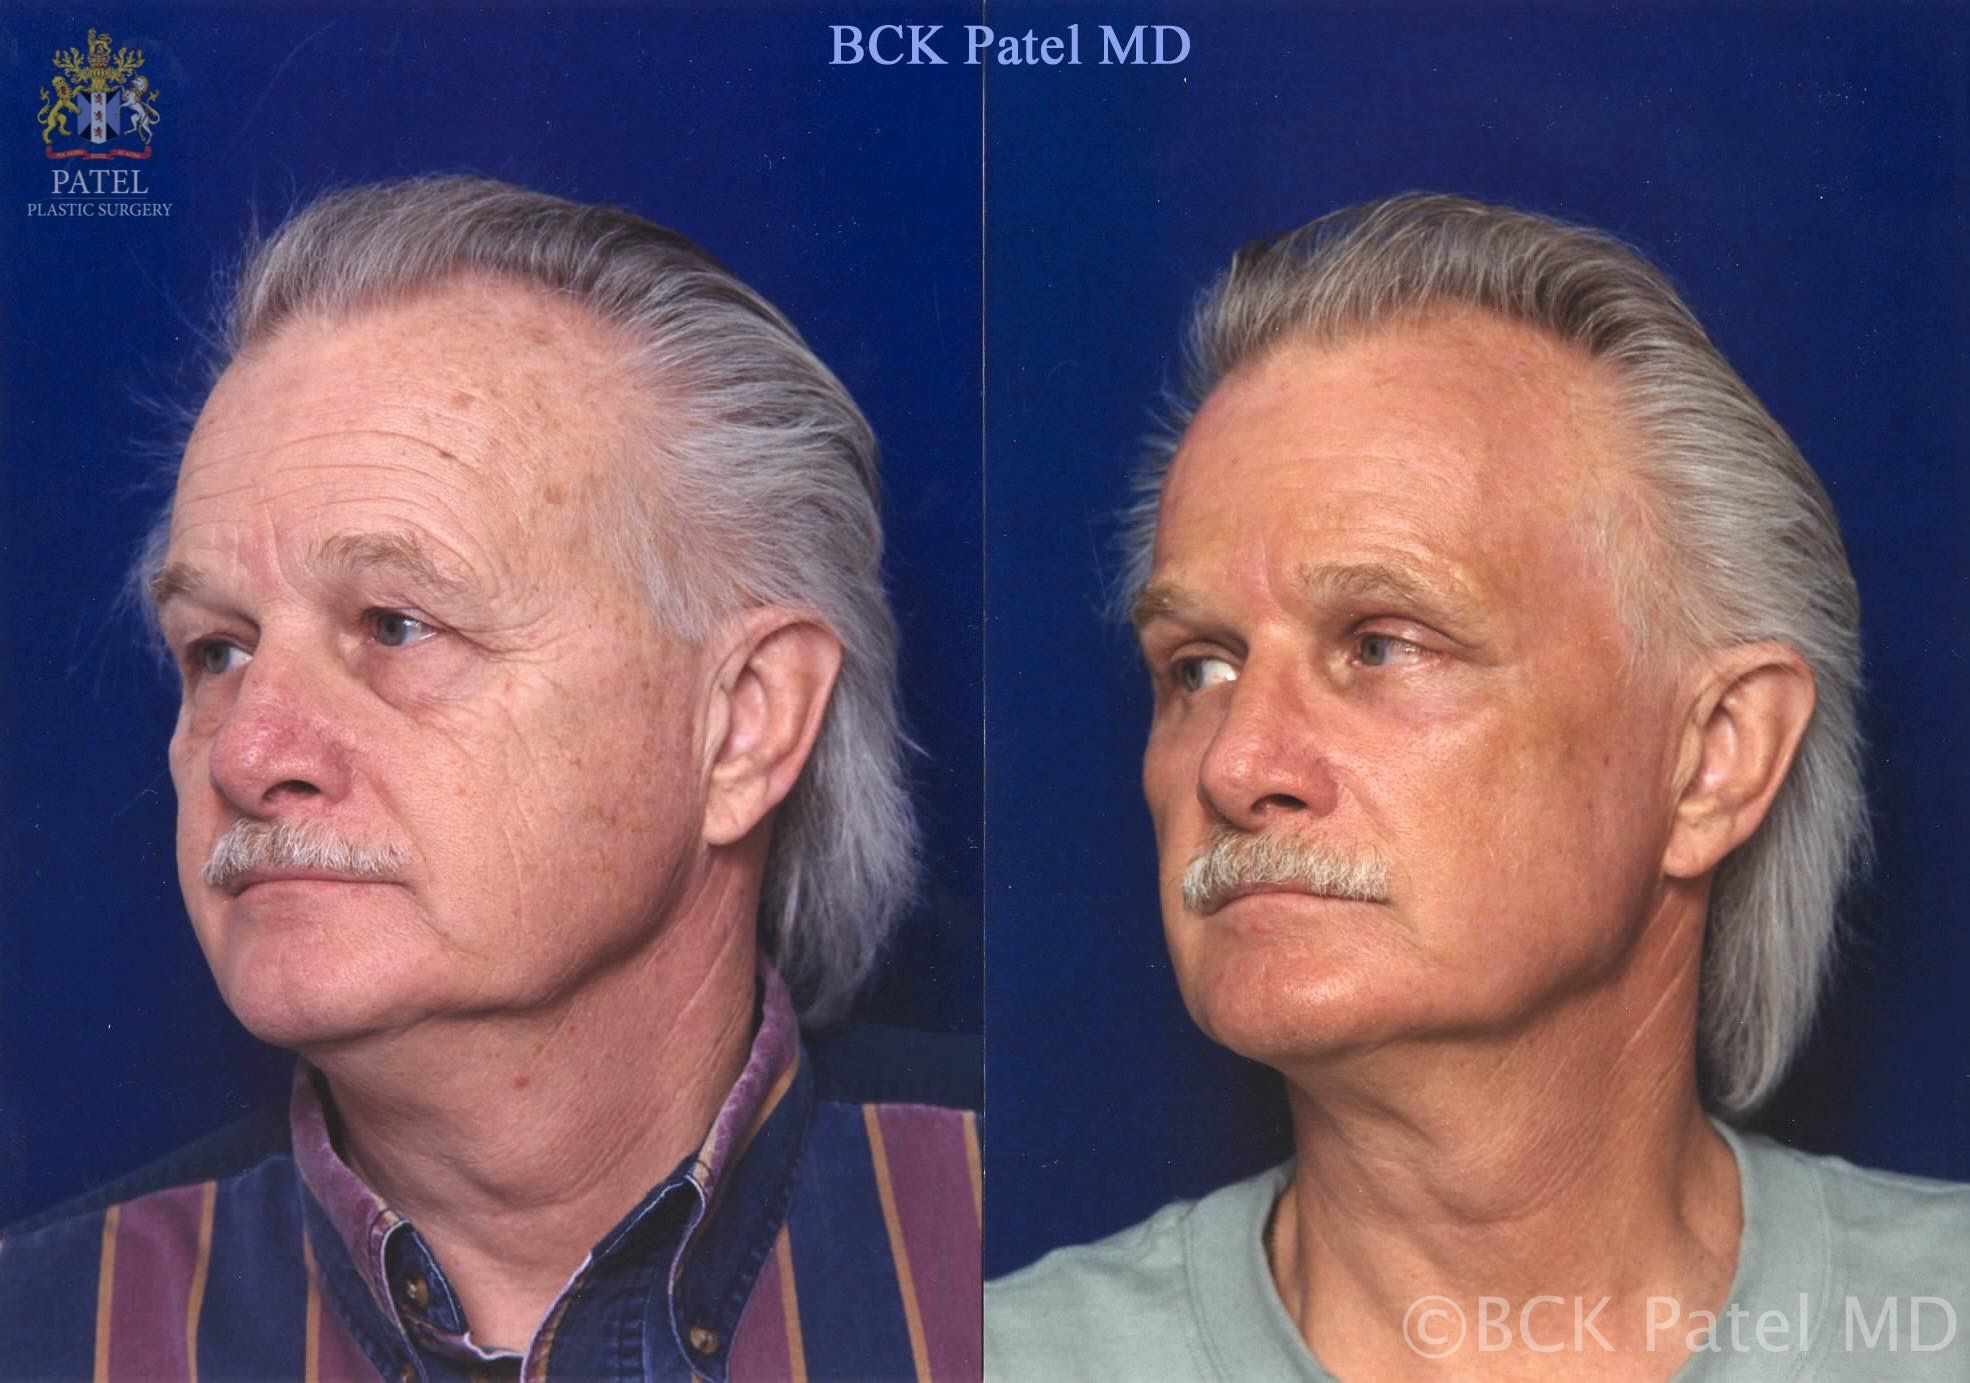 englishsurgeon.com. Results of the fractionated CO2 laser to the full face in a man by Dr. BCK patel MD, FRCS, Salt Lake City, St George, London, England